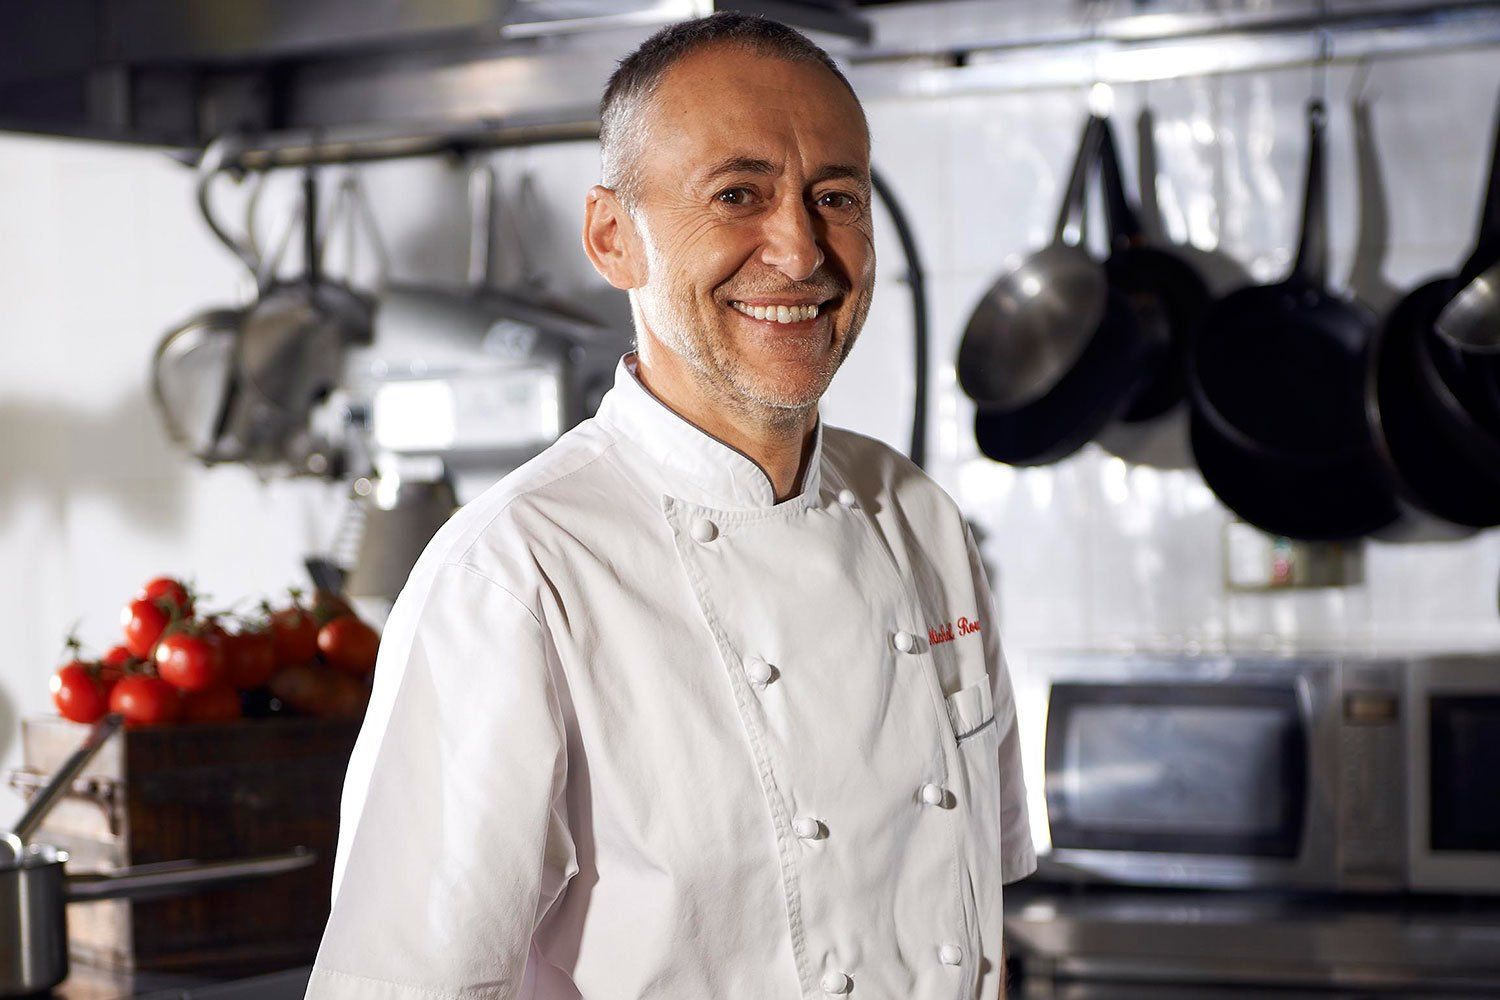 Kitchen Impossible Michel Roux Jr Trains People With Disabilities